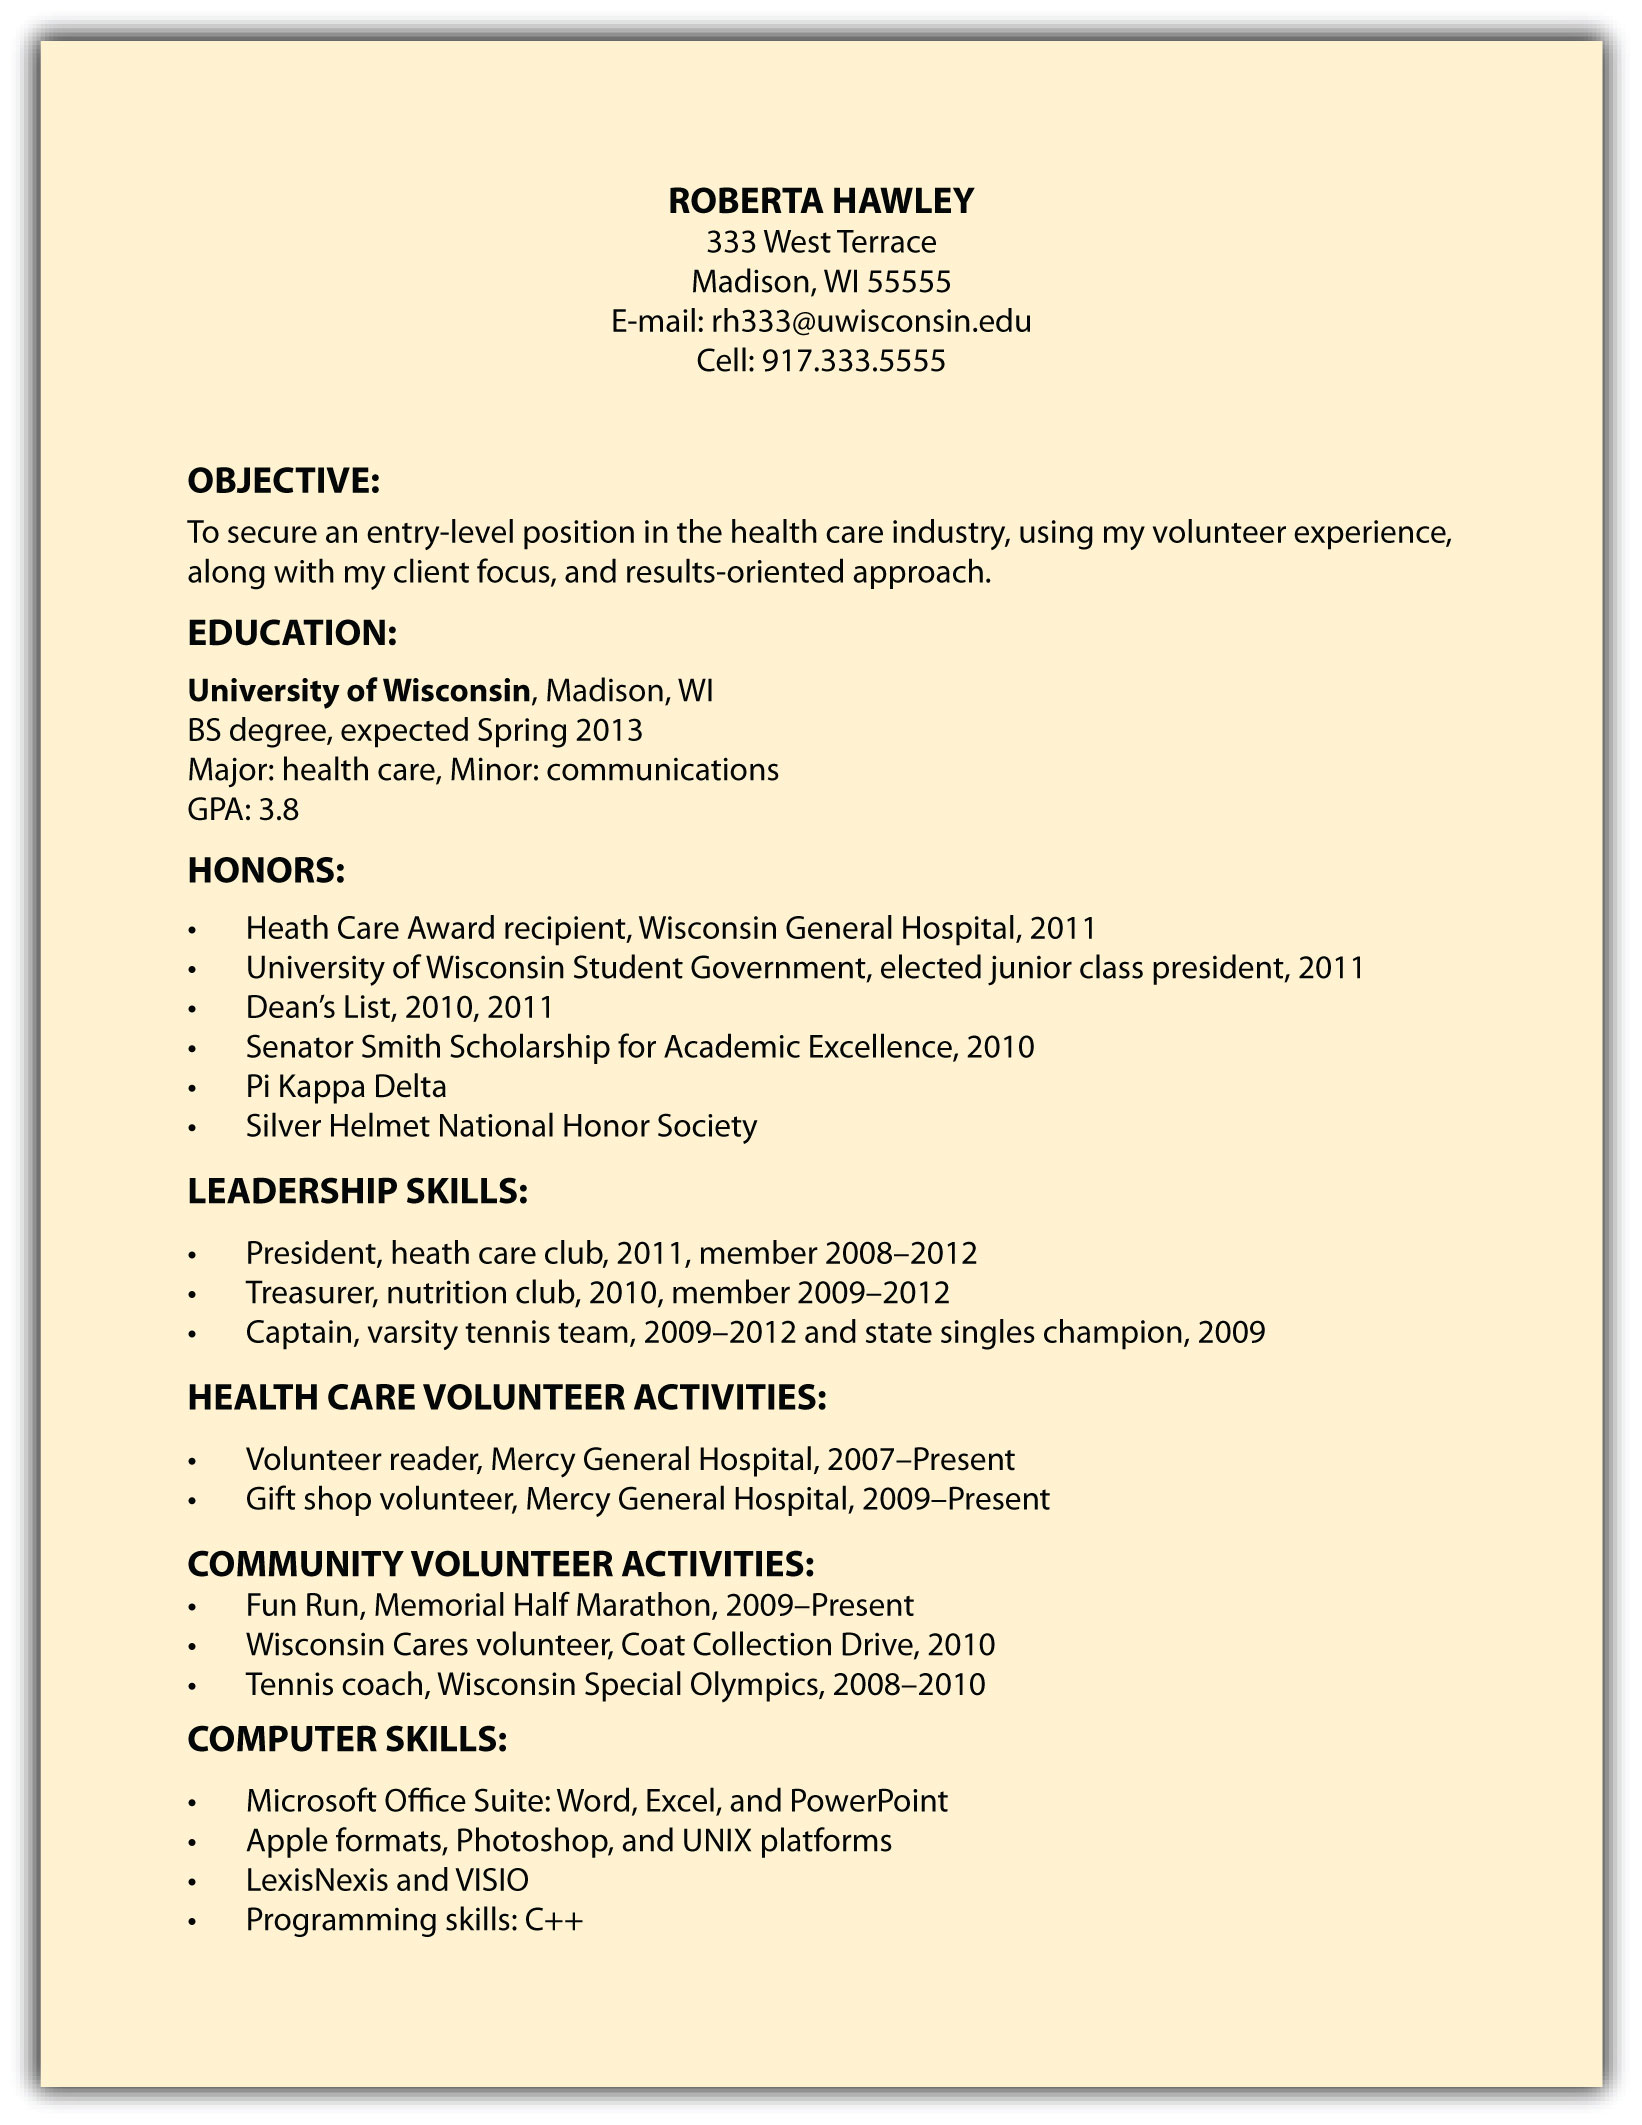 Functional Résumés  Sample Of Functional Resume